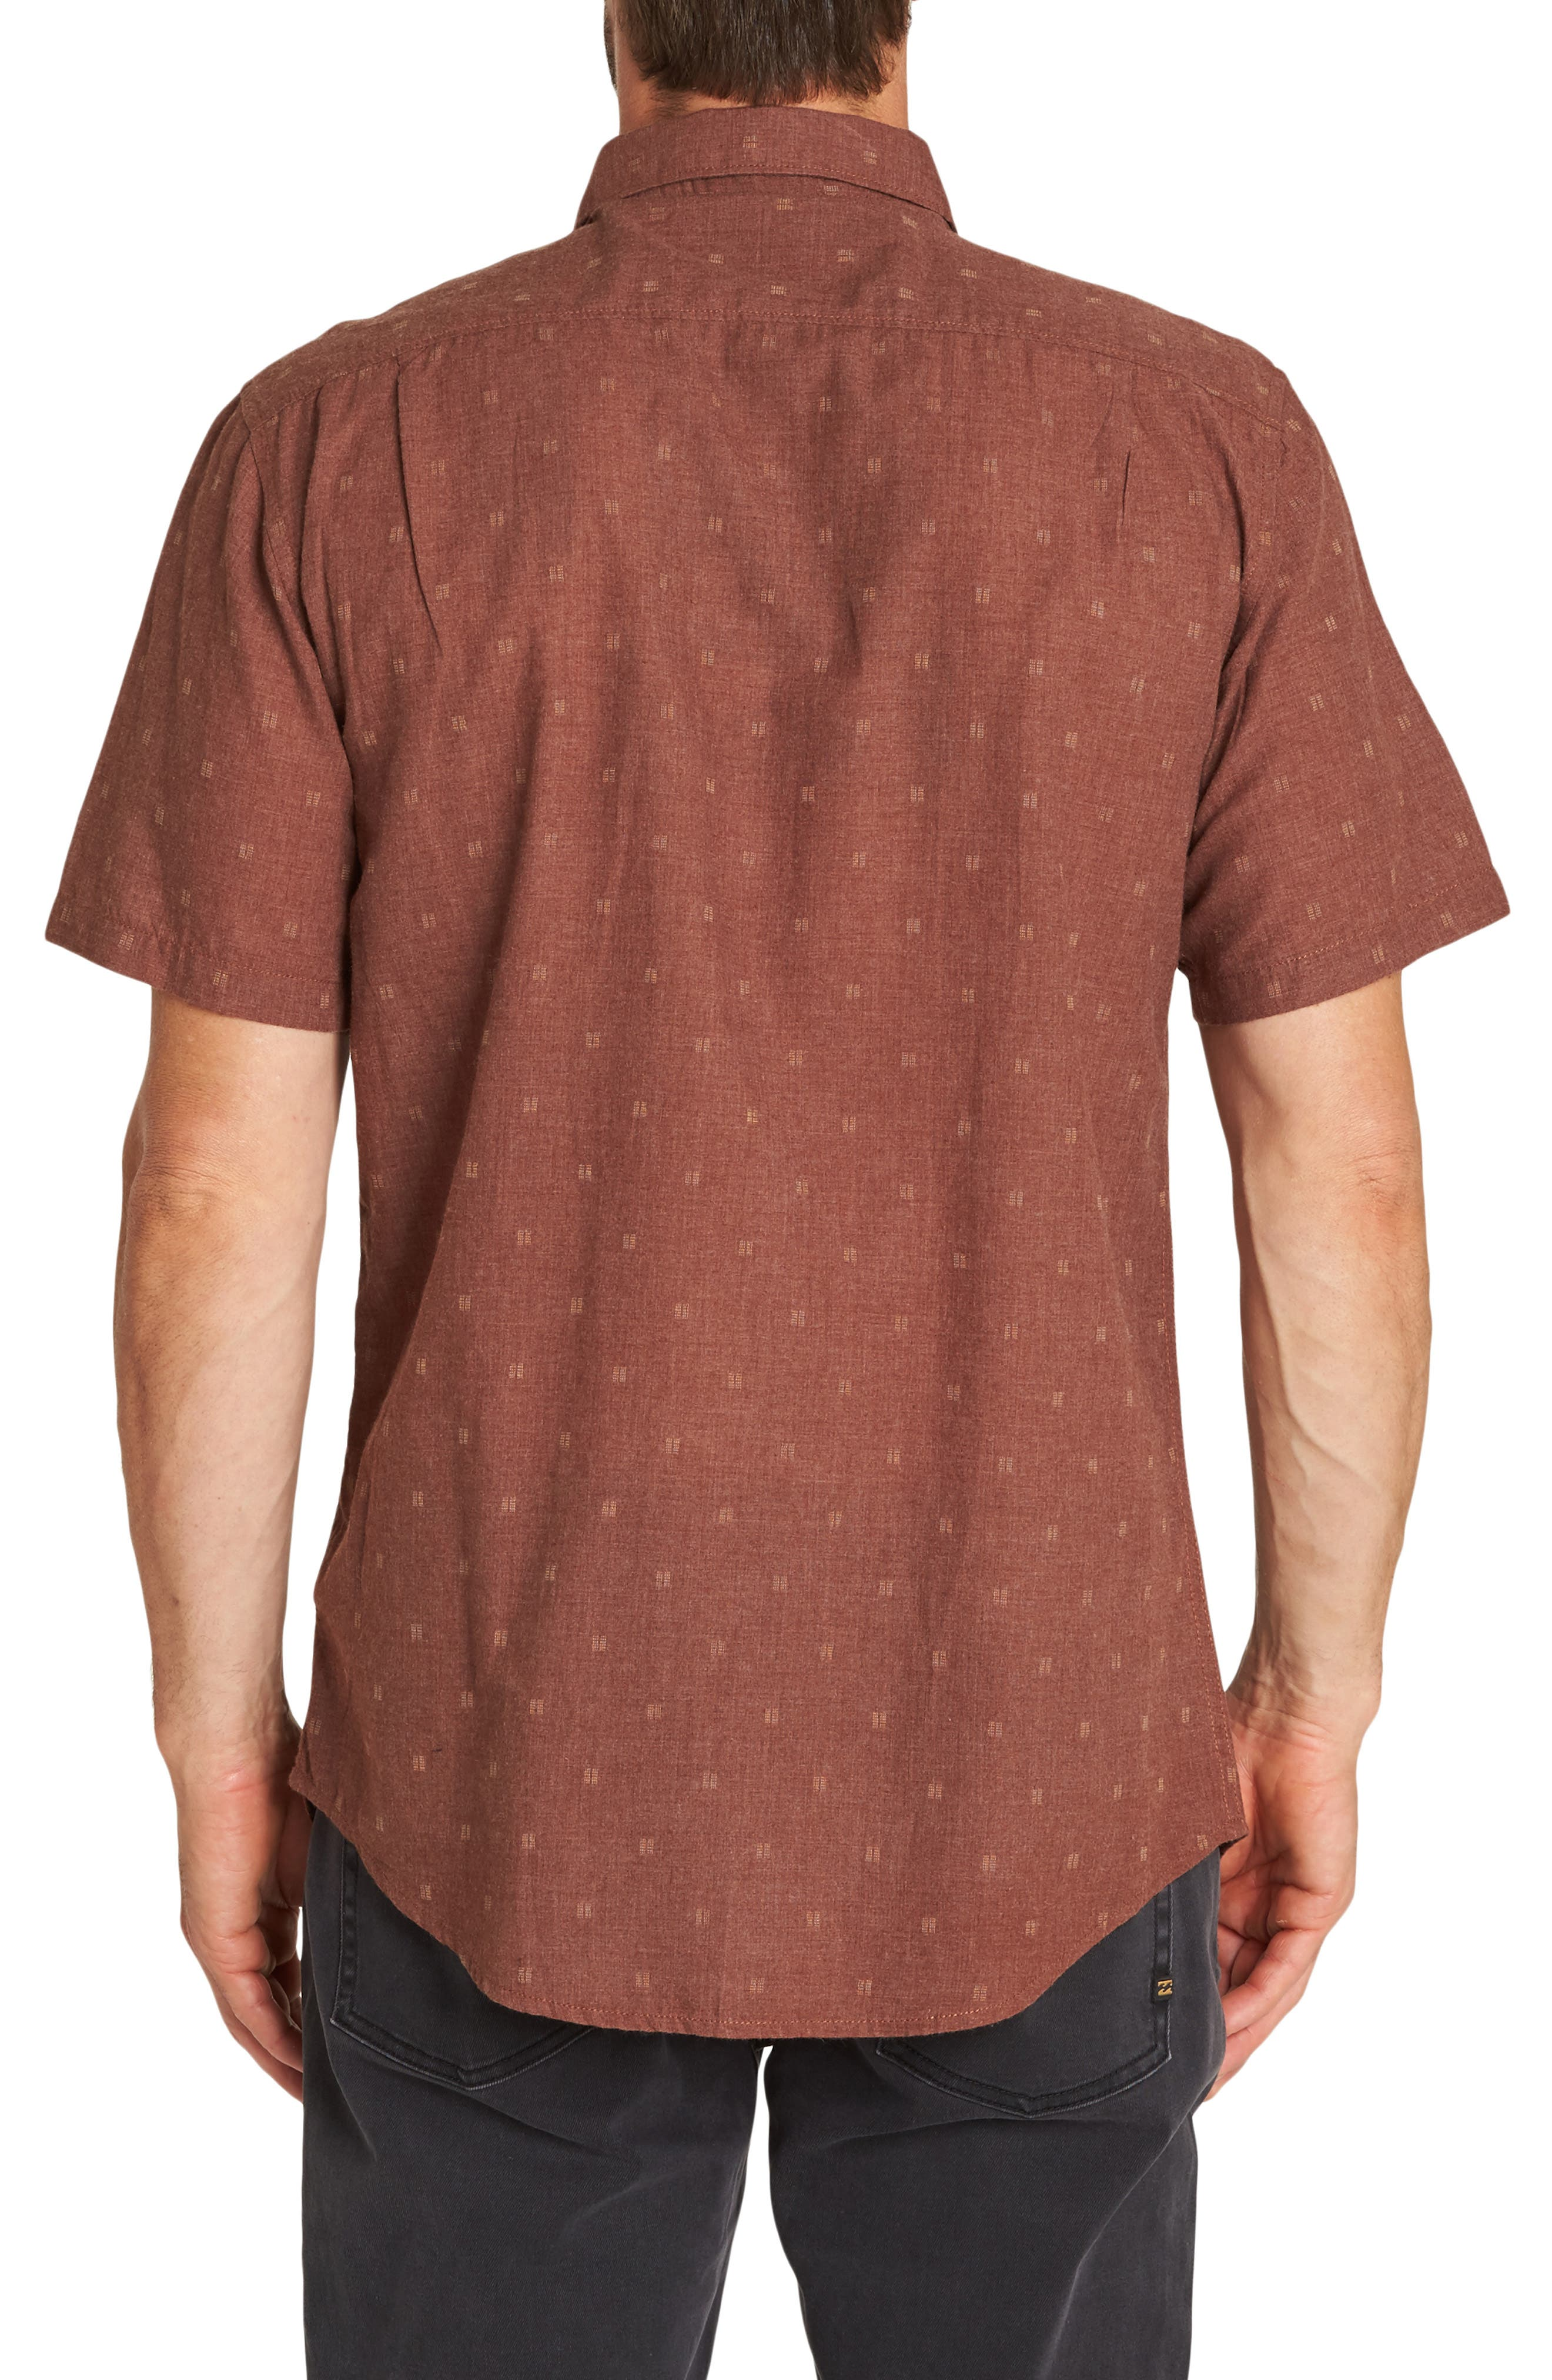 All Day Jacquard Shirt,                             Alternate thumbnail 2, color,                             RUST HEATHER